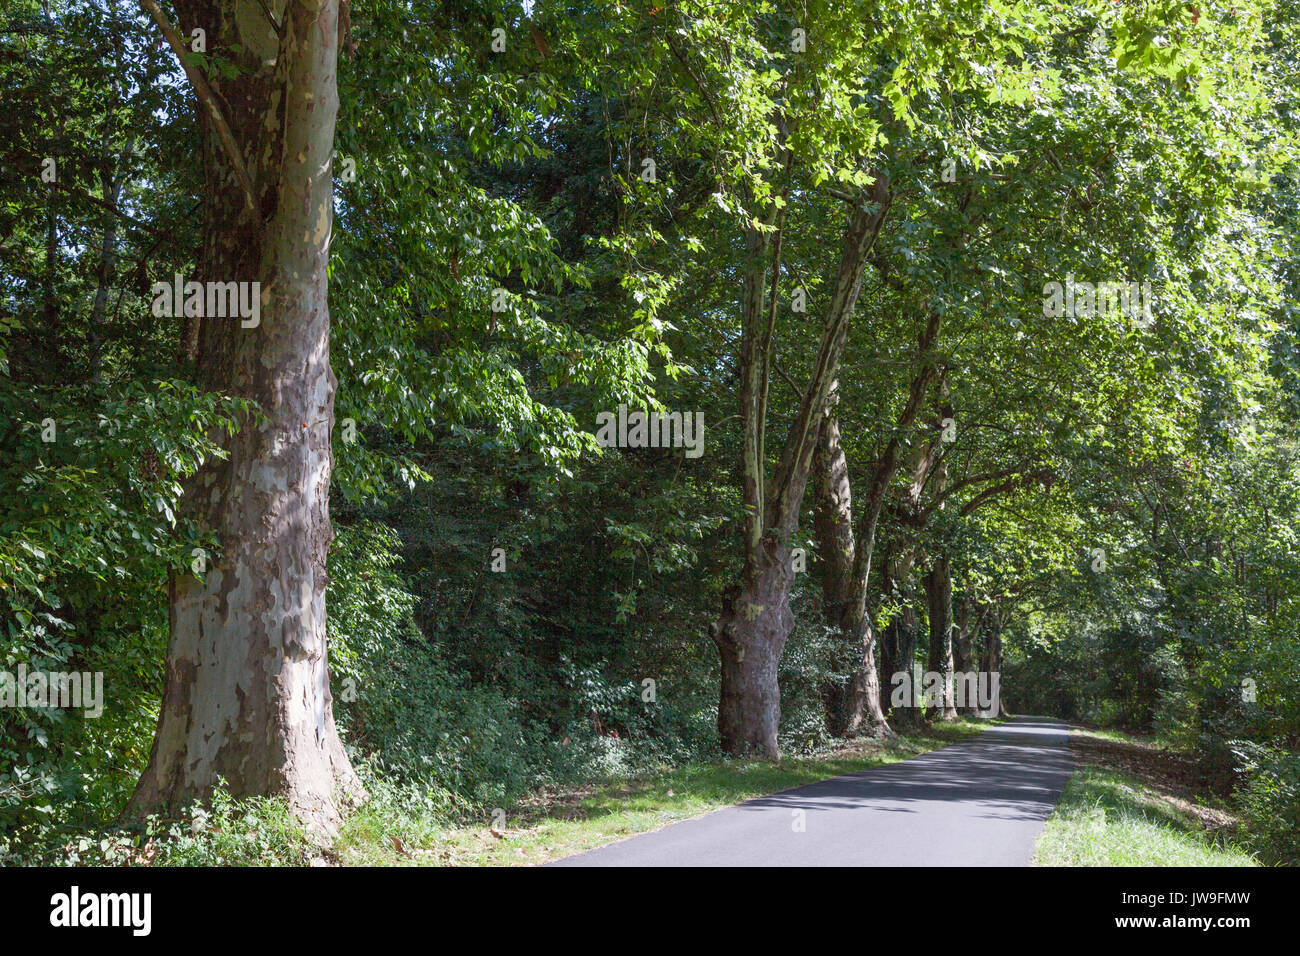 A row of several hundred year old plane trees, on the ex-towpath of the Adour river (Saubusse - France). In Summer, plane trees exfoliate their bark. - Stock Image